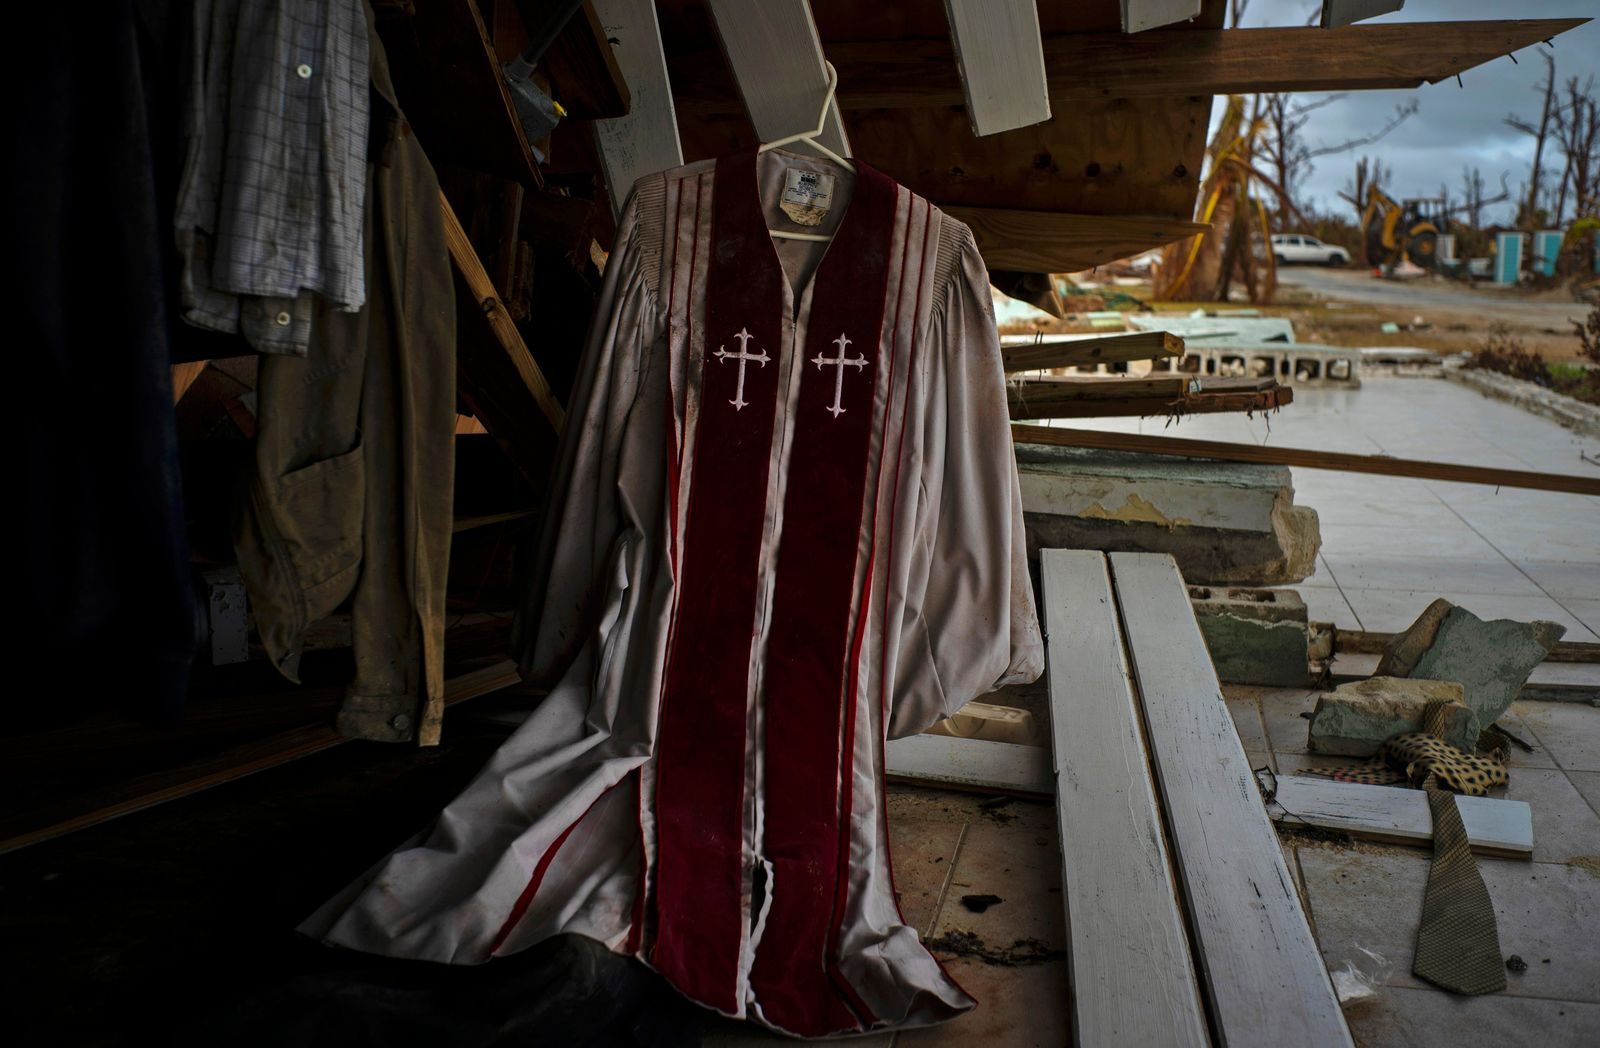 Priest's mass vestments hang in the rubble of a destroyed house by Hurricane Dorian in Pelican Point, Grand Bahama, Bahamas, Saturday Sept. 14, 2019. (AP Photo/Ramon Espinosa)